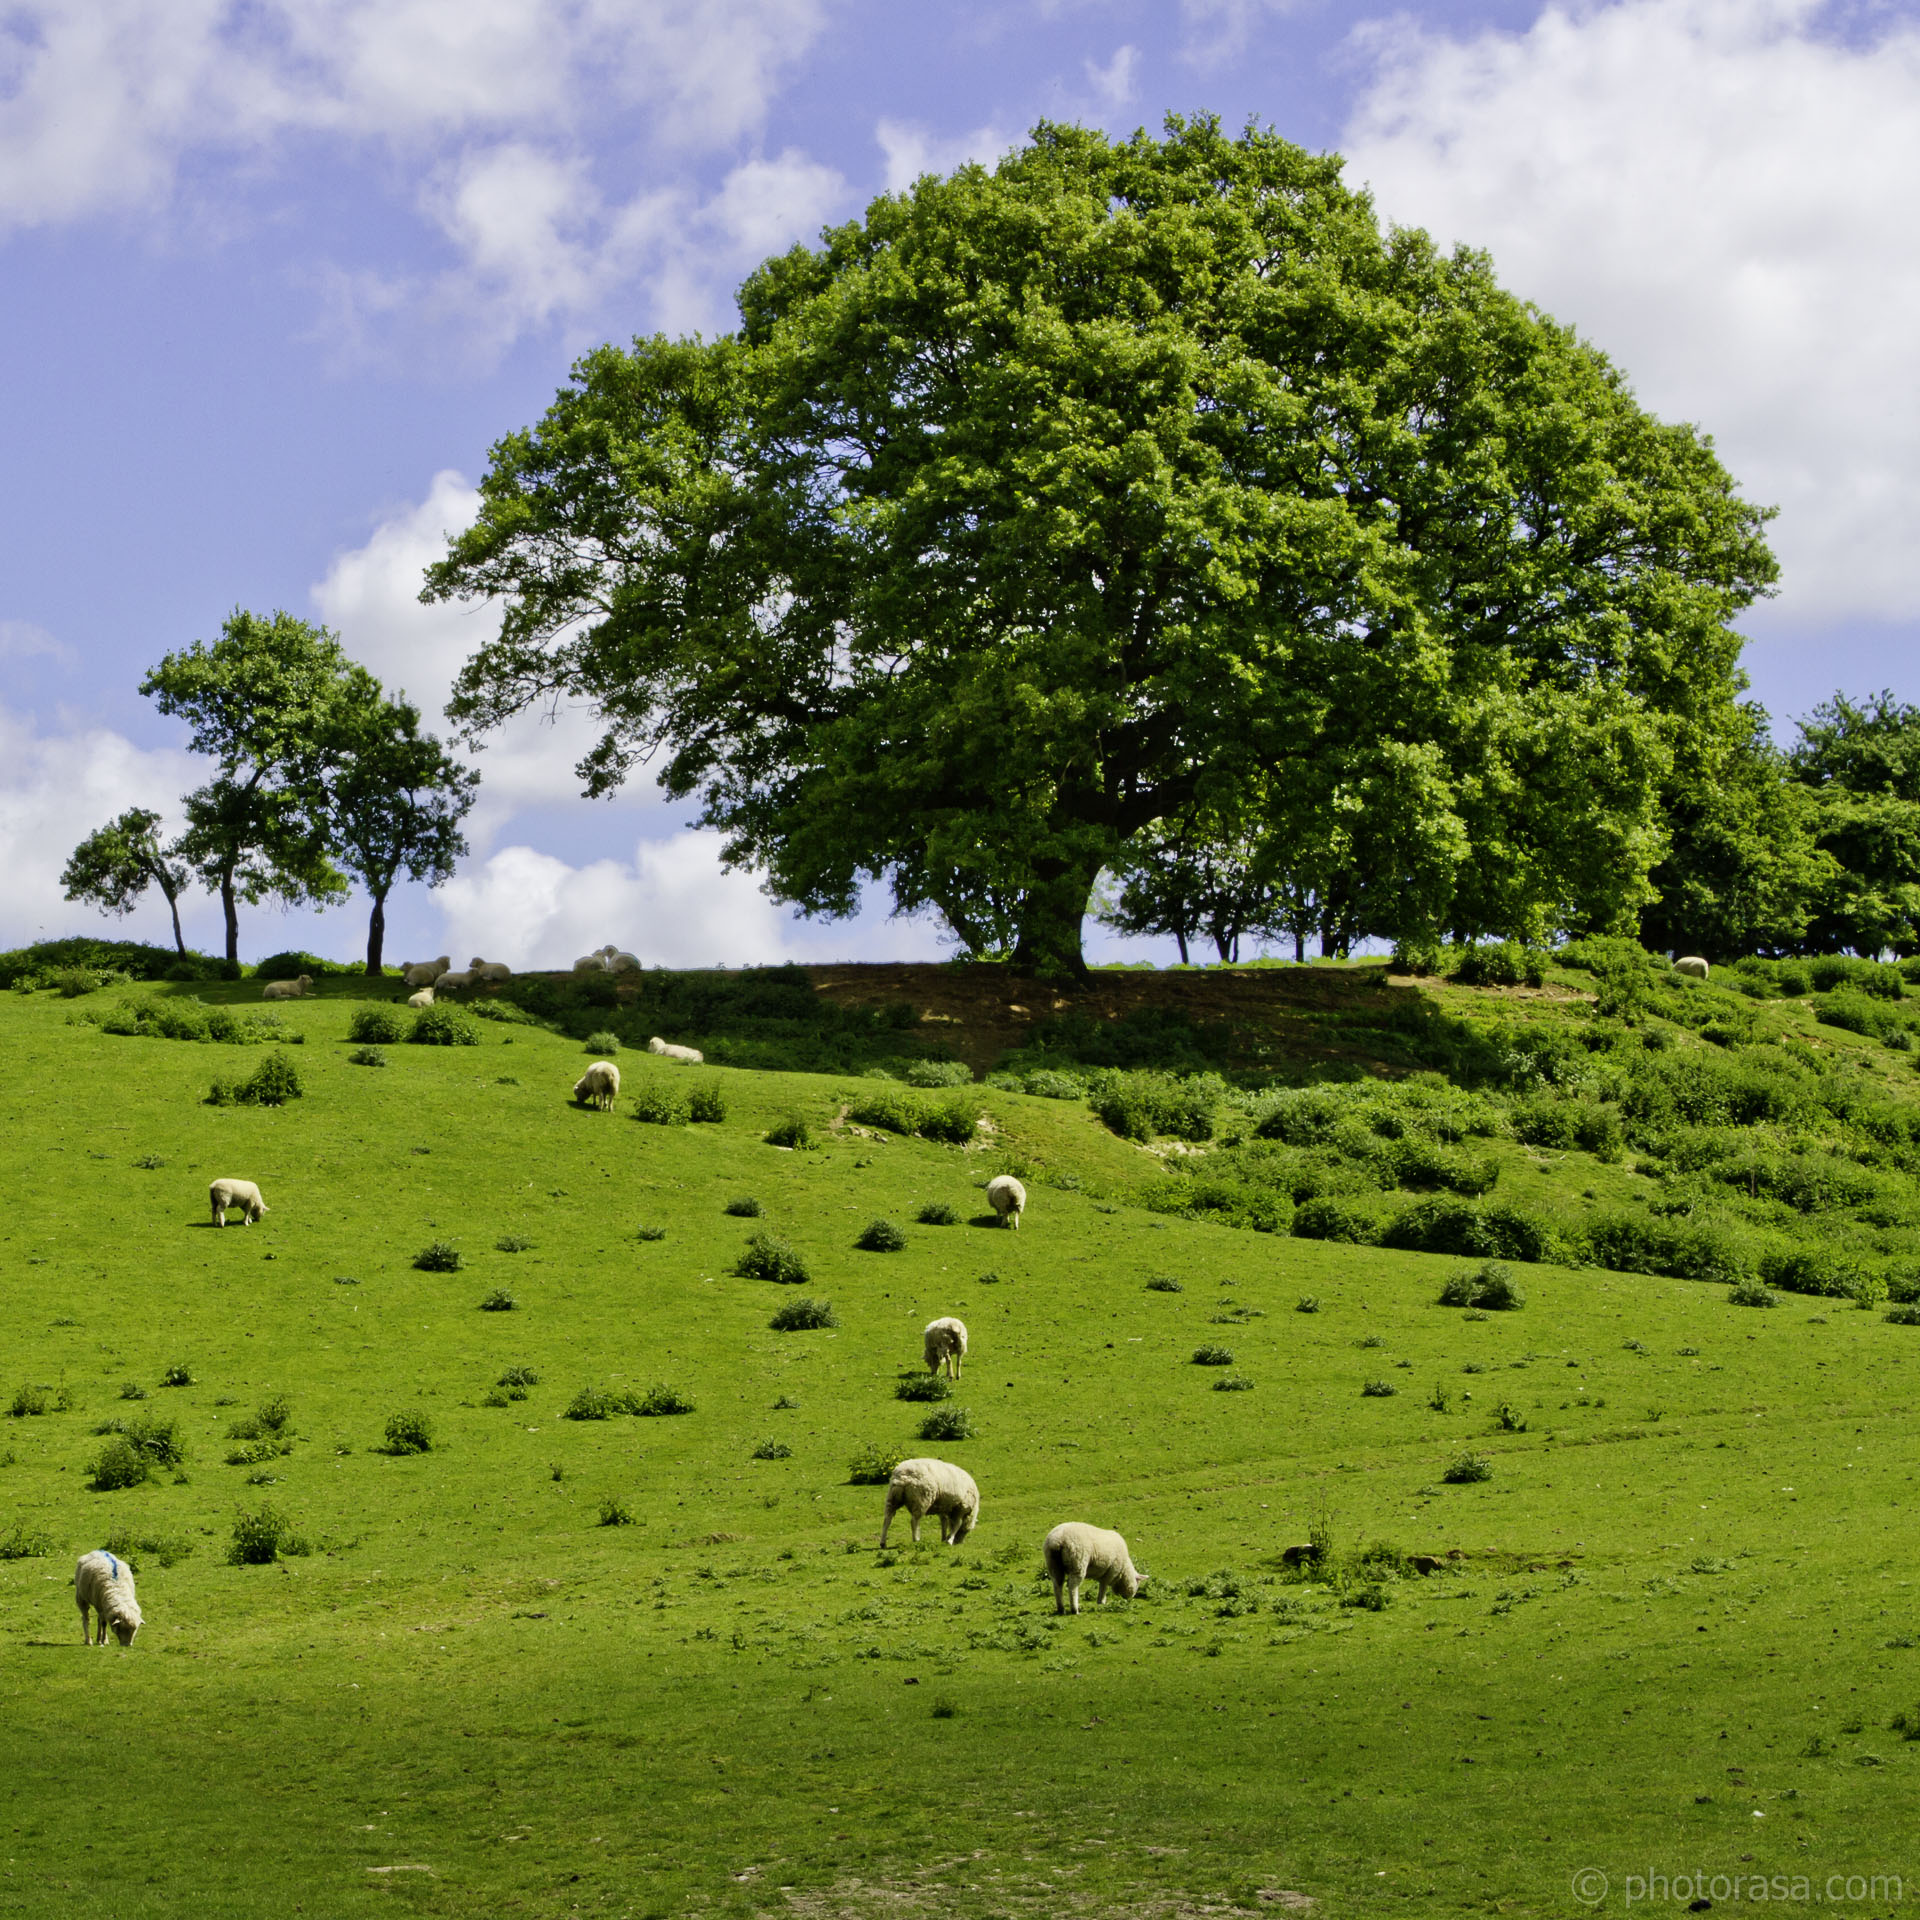 sheep and oak on brow of hill